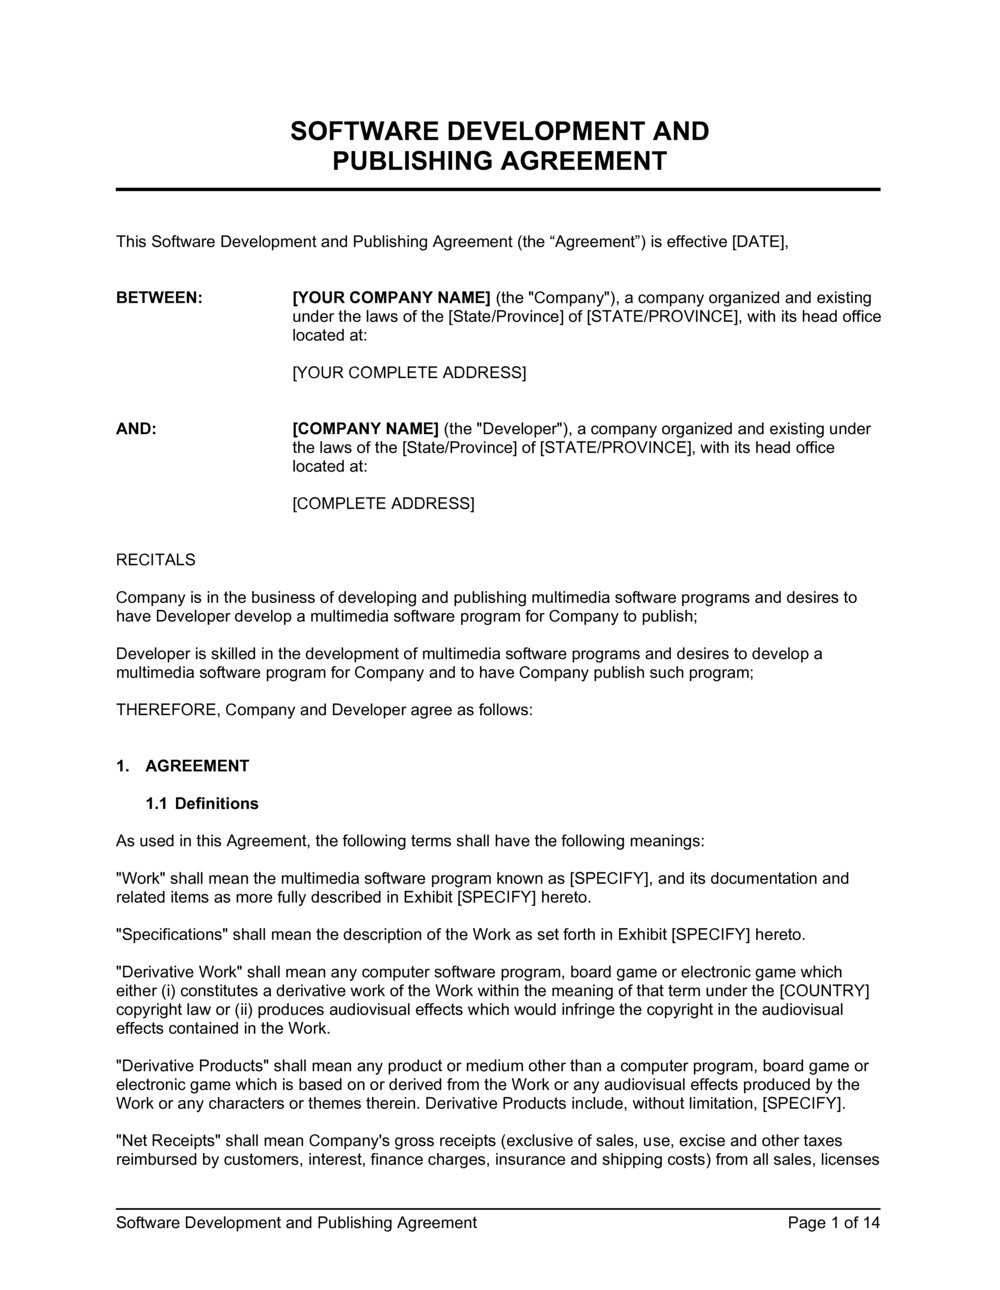 Business-in-a-Box's Software Development and Publishing Agreement Template